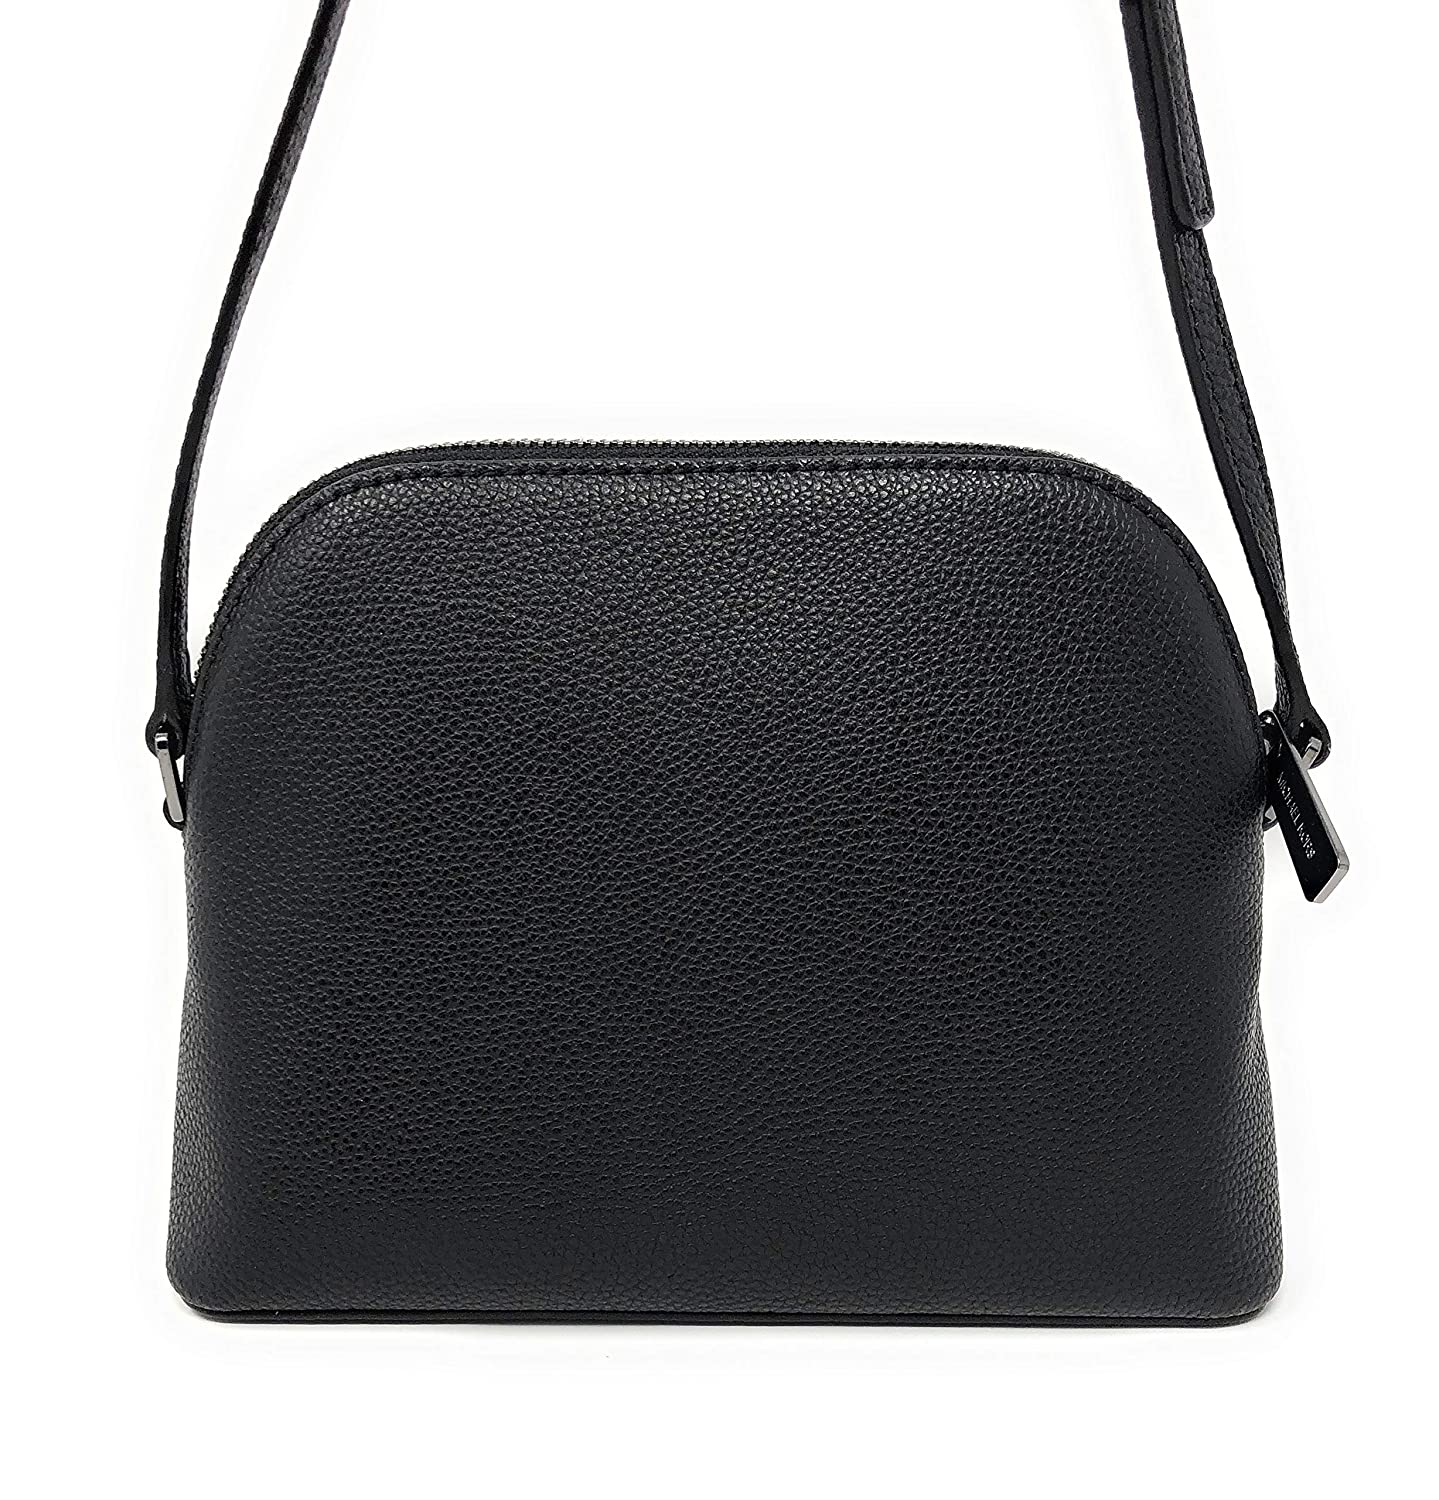 fb836f23e53a99 Amazon.com: Michael Kors Adele Medium Dome Leather Crossbody bag in Black:  Clothing